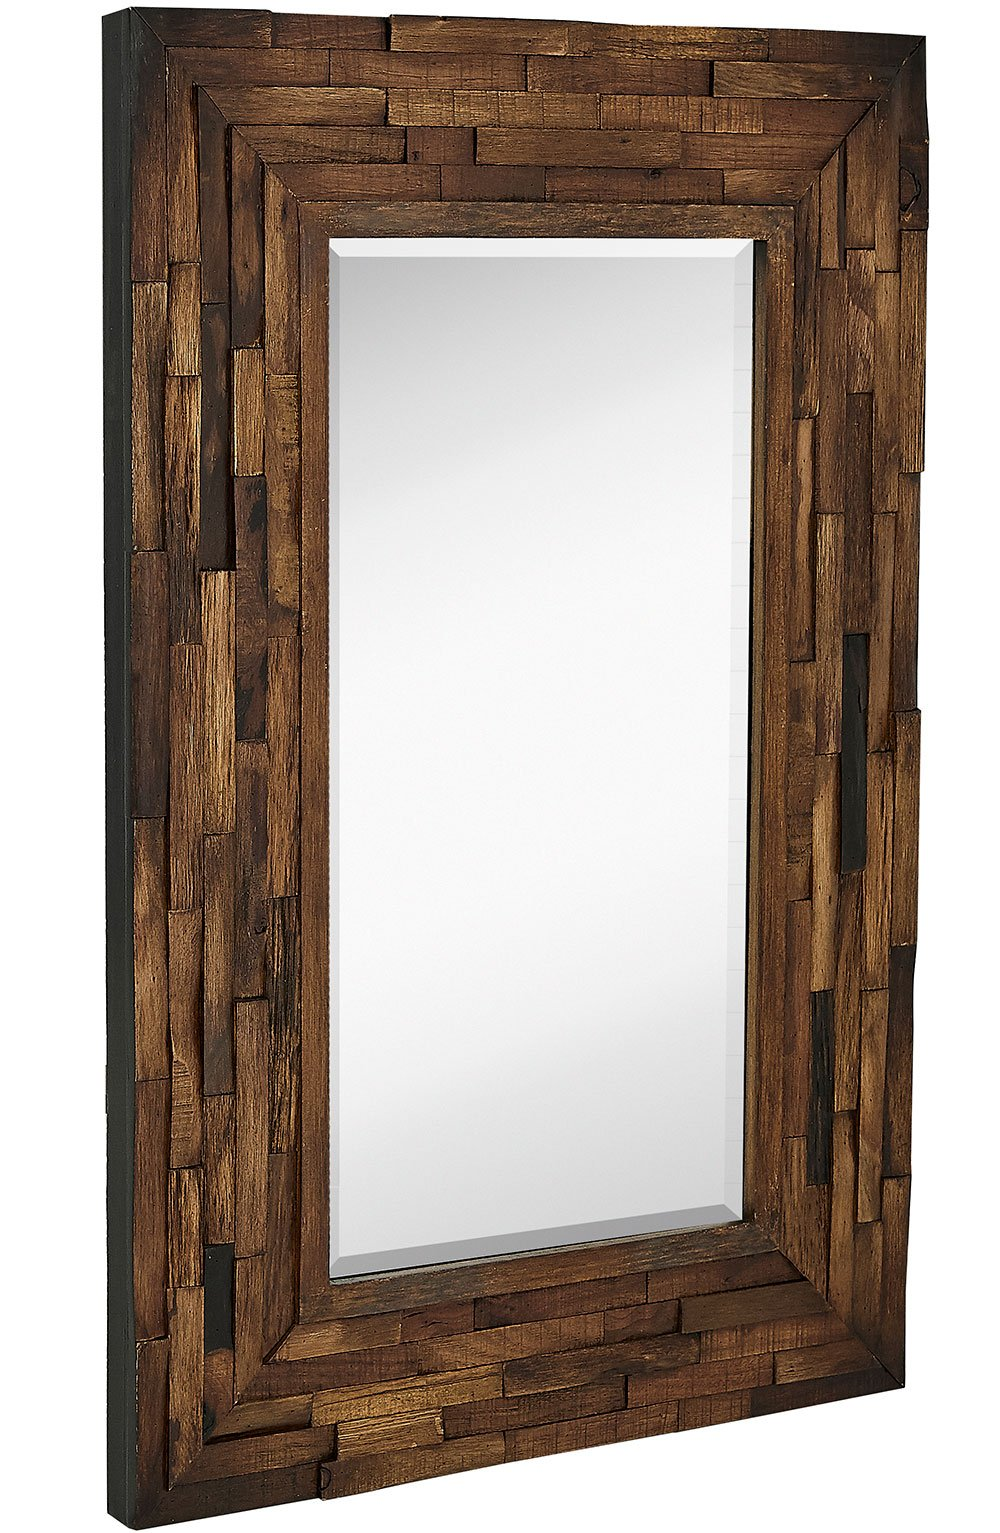 Get Quotations Rustic Natural Wood Framed Wall Mirror Solid Construction Gl Vanity Bedroom